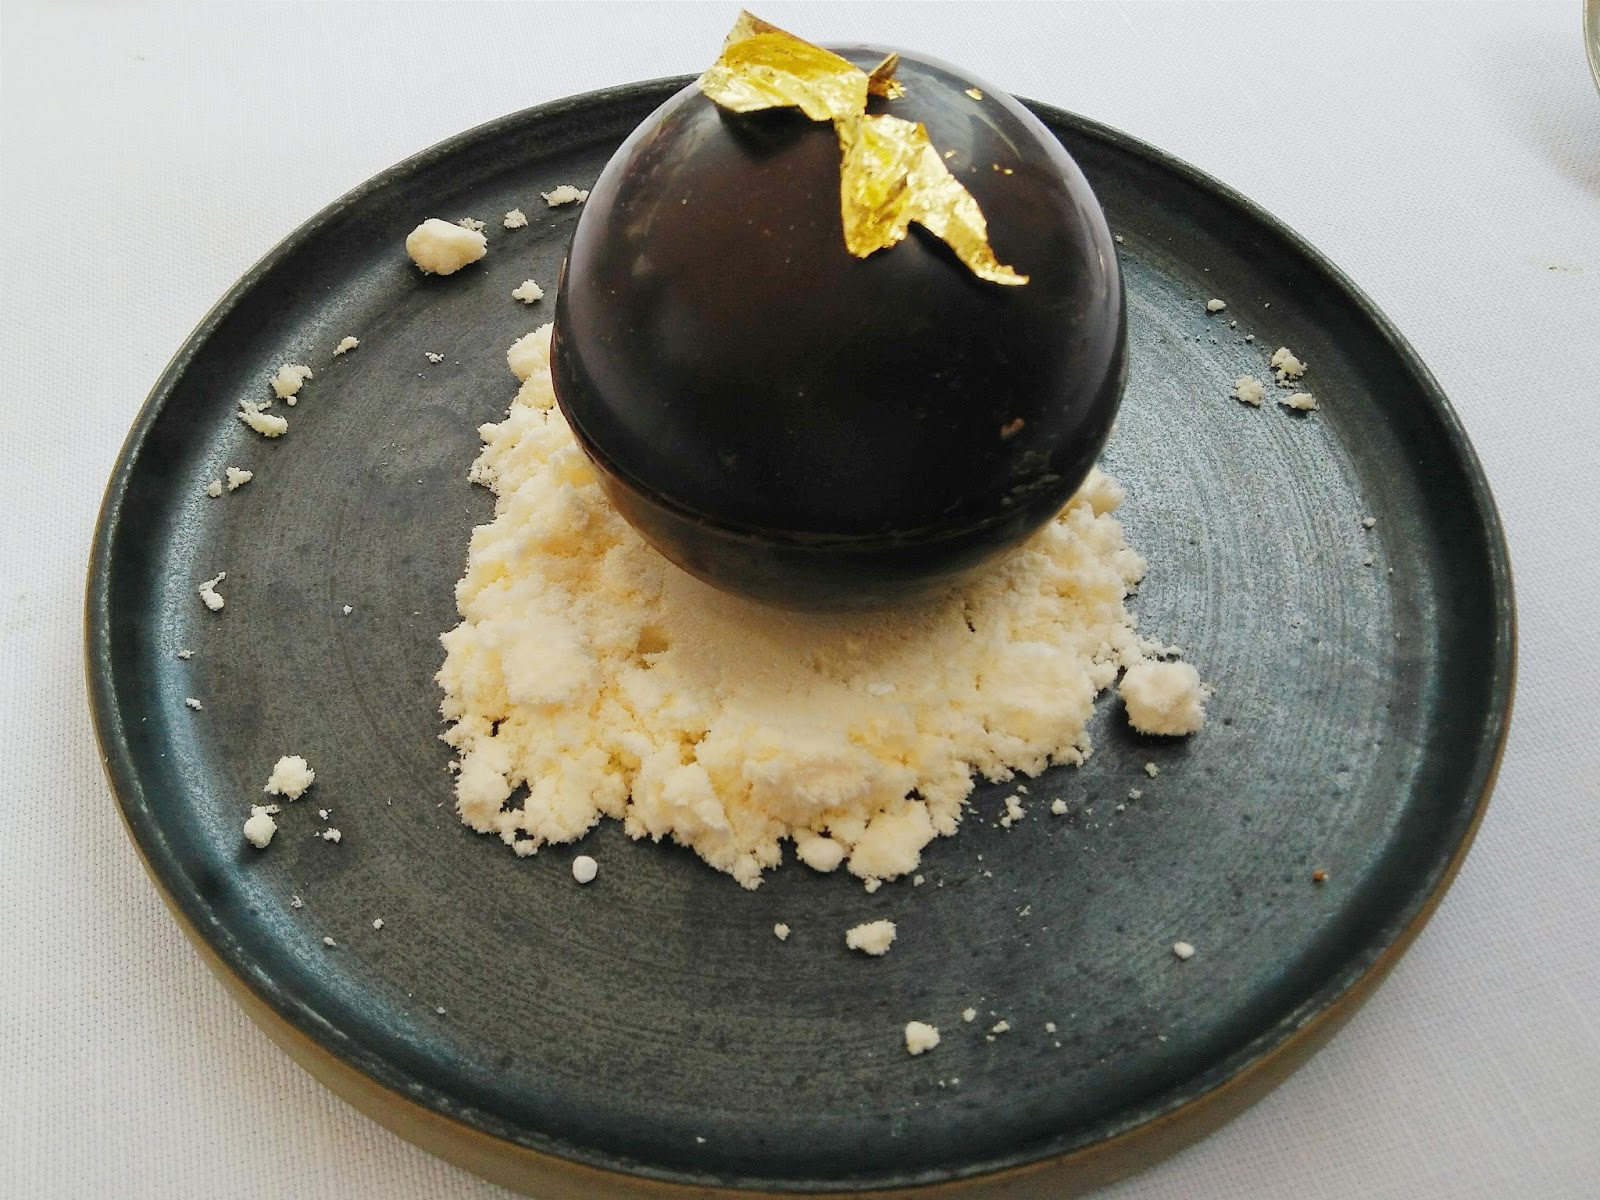 Chocolate sphere dessert at Great Fosters Estate Grill